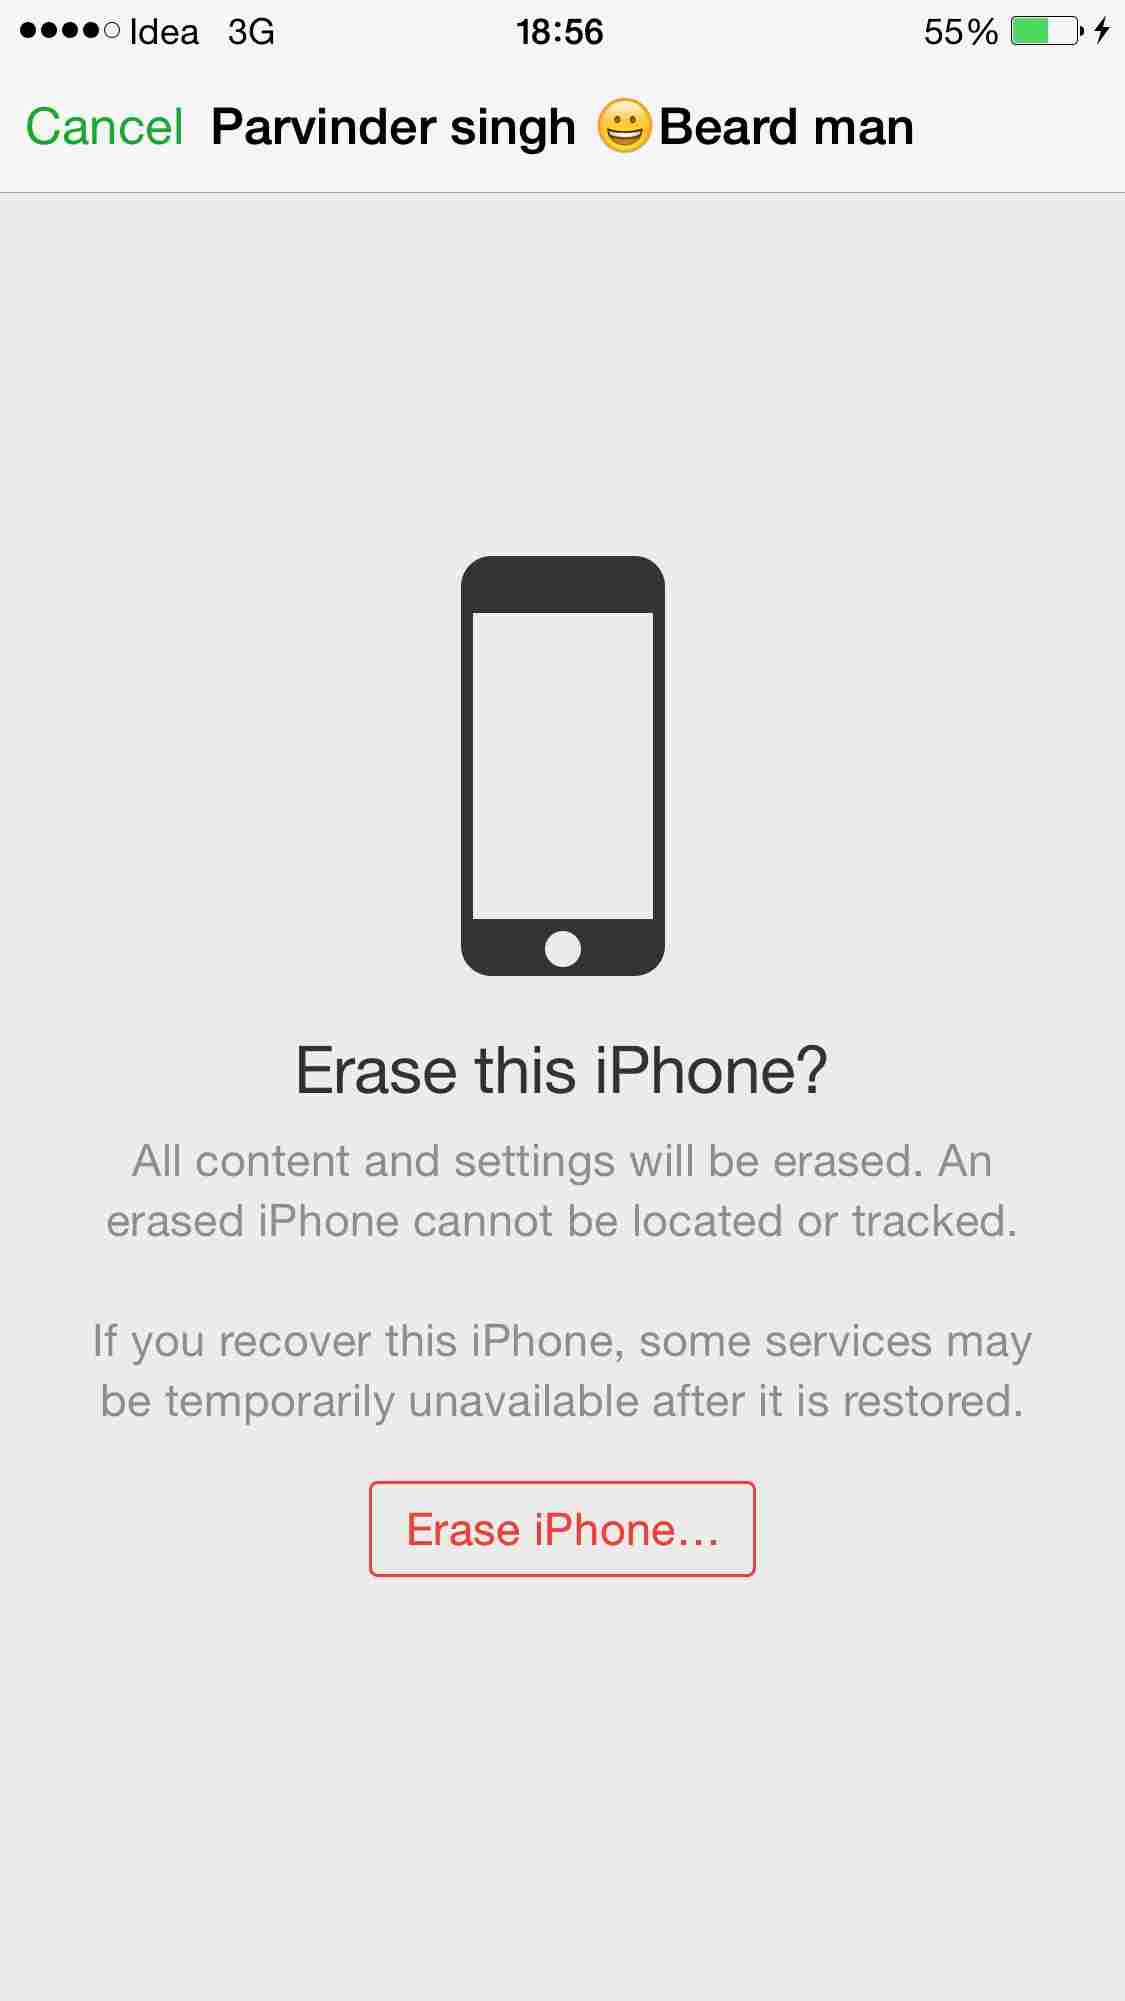 How To Track A Stolen Iphone Without Icloud